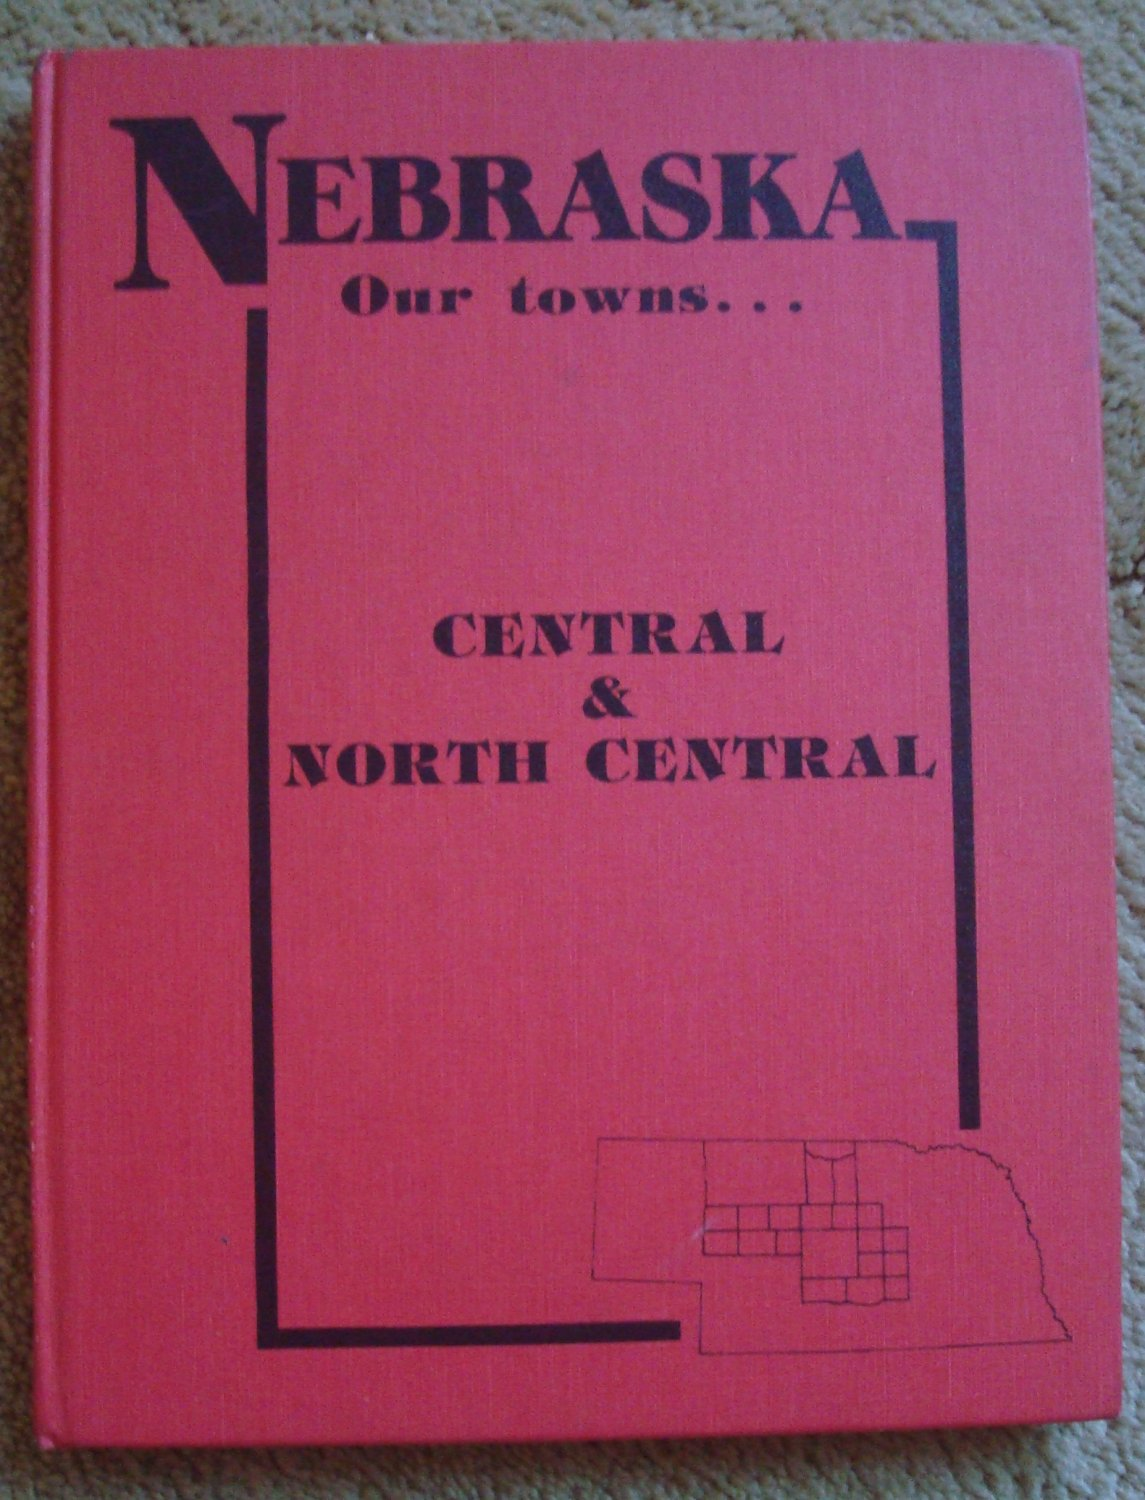 Nebraska Our Towns: Central & North Central